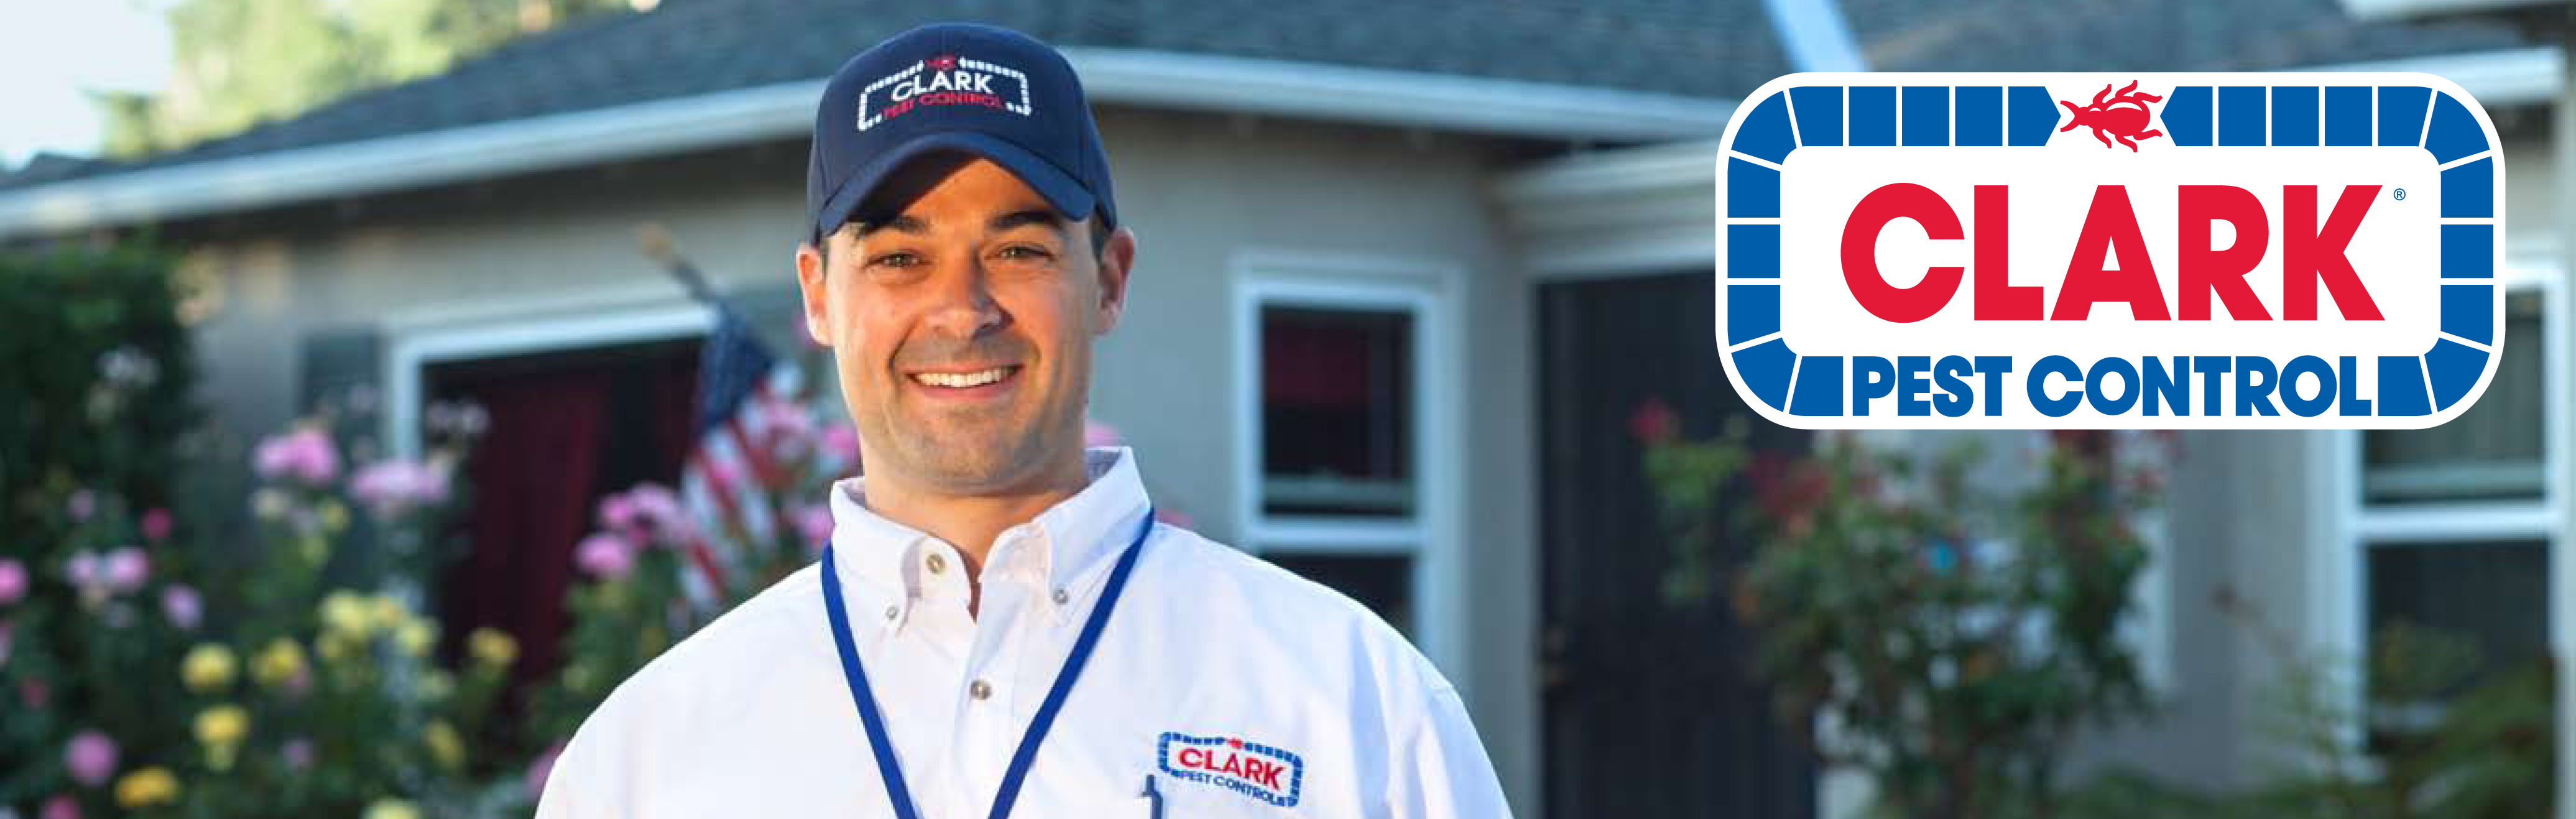 Clark Pest Control reviews | Home & Garden at 3080 Crossroads Drive - Redding CA